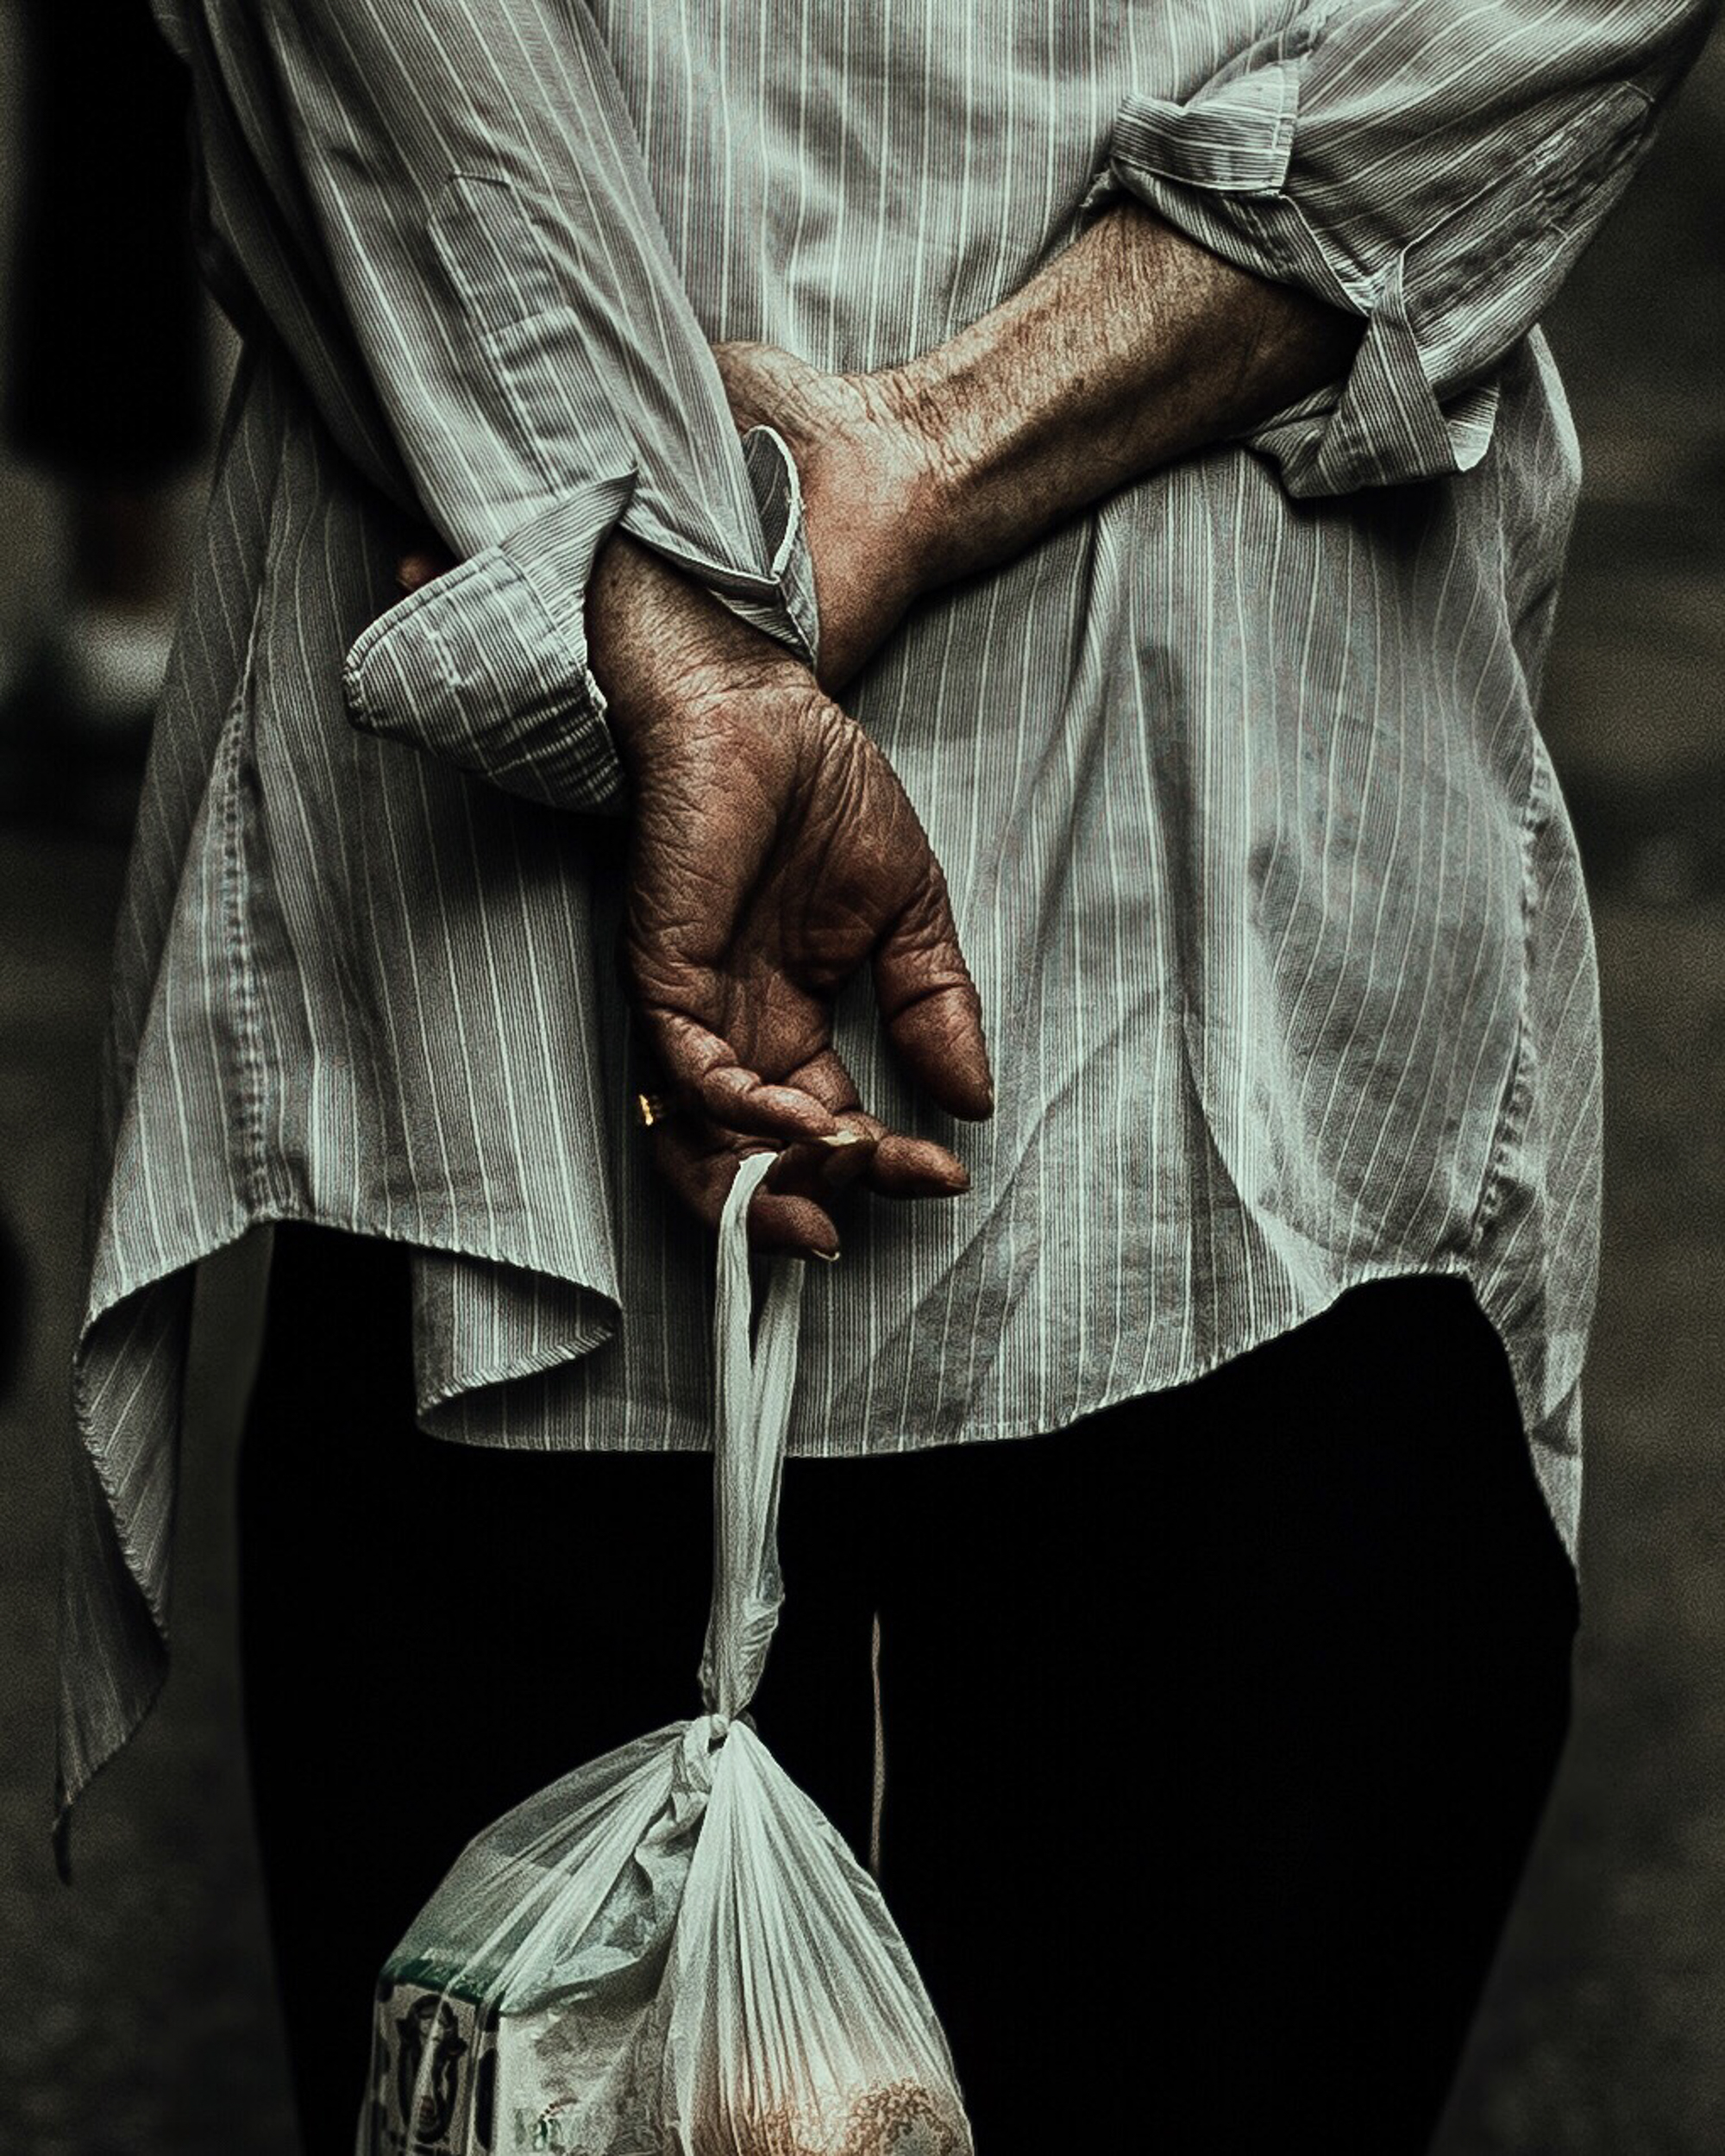 man walking with his hands clasped behind his back in new york, michelle viljoen, street photography, new york city, new york, street photography, photography, canon, canon 5d miv